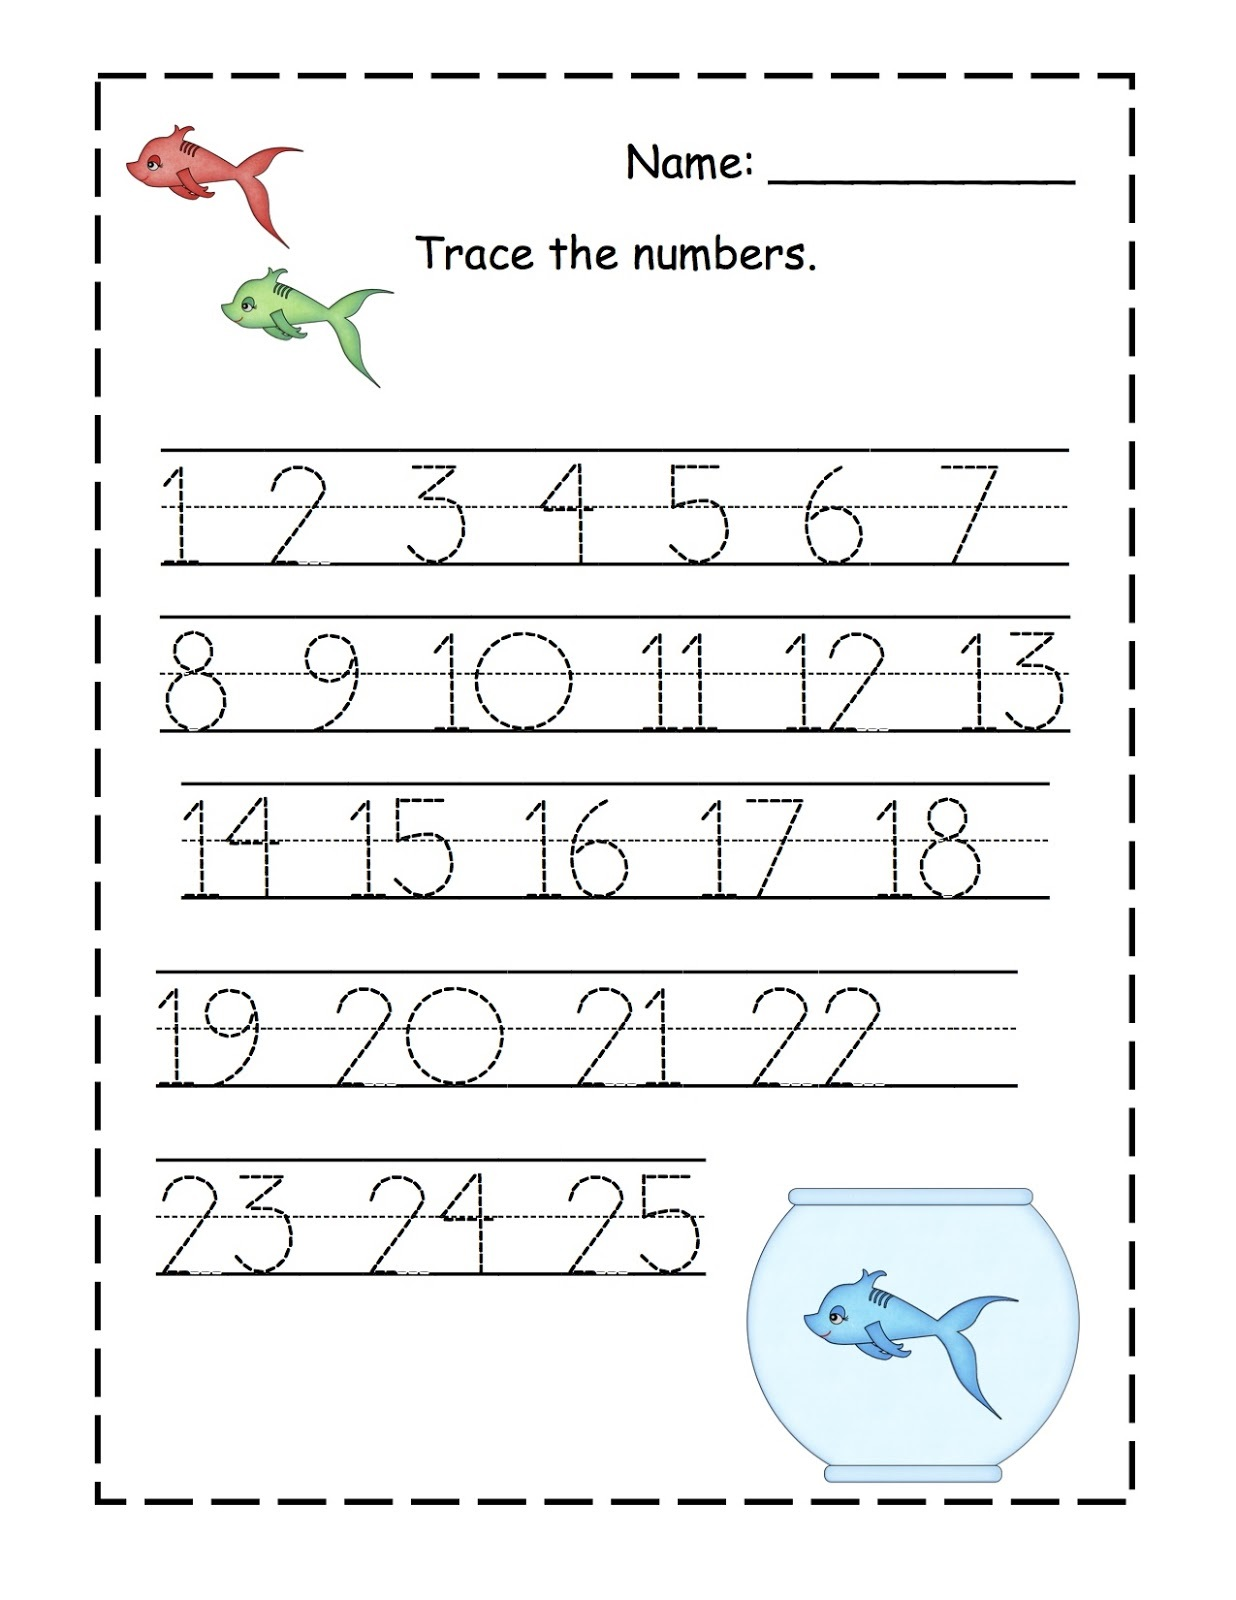 Printables Preschool Number Tracing Worksheets 1-20 number tracing worksheets 1 20 worksheet free printable numbers and activity sheets for kids